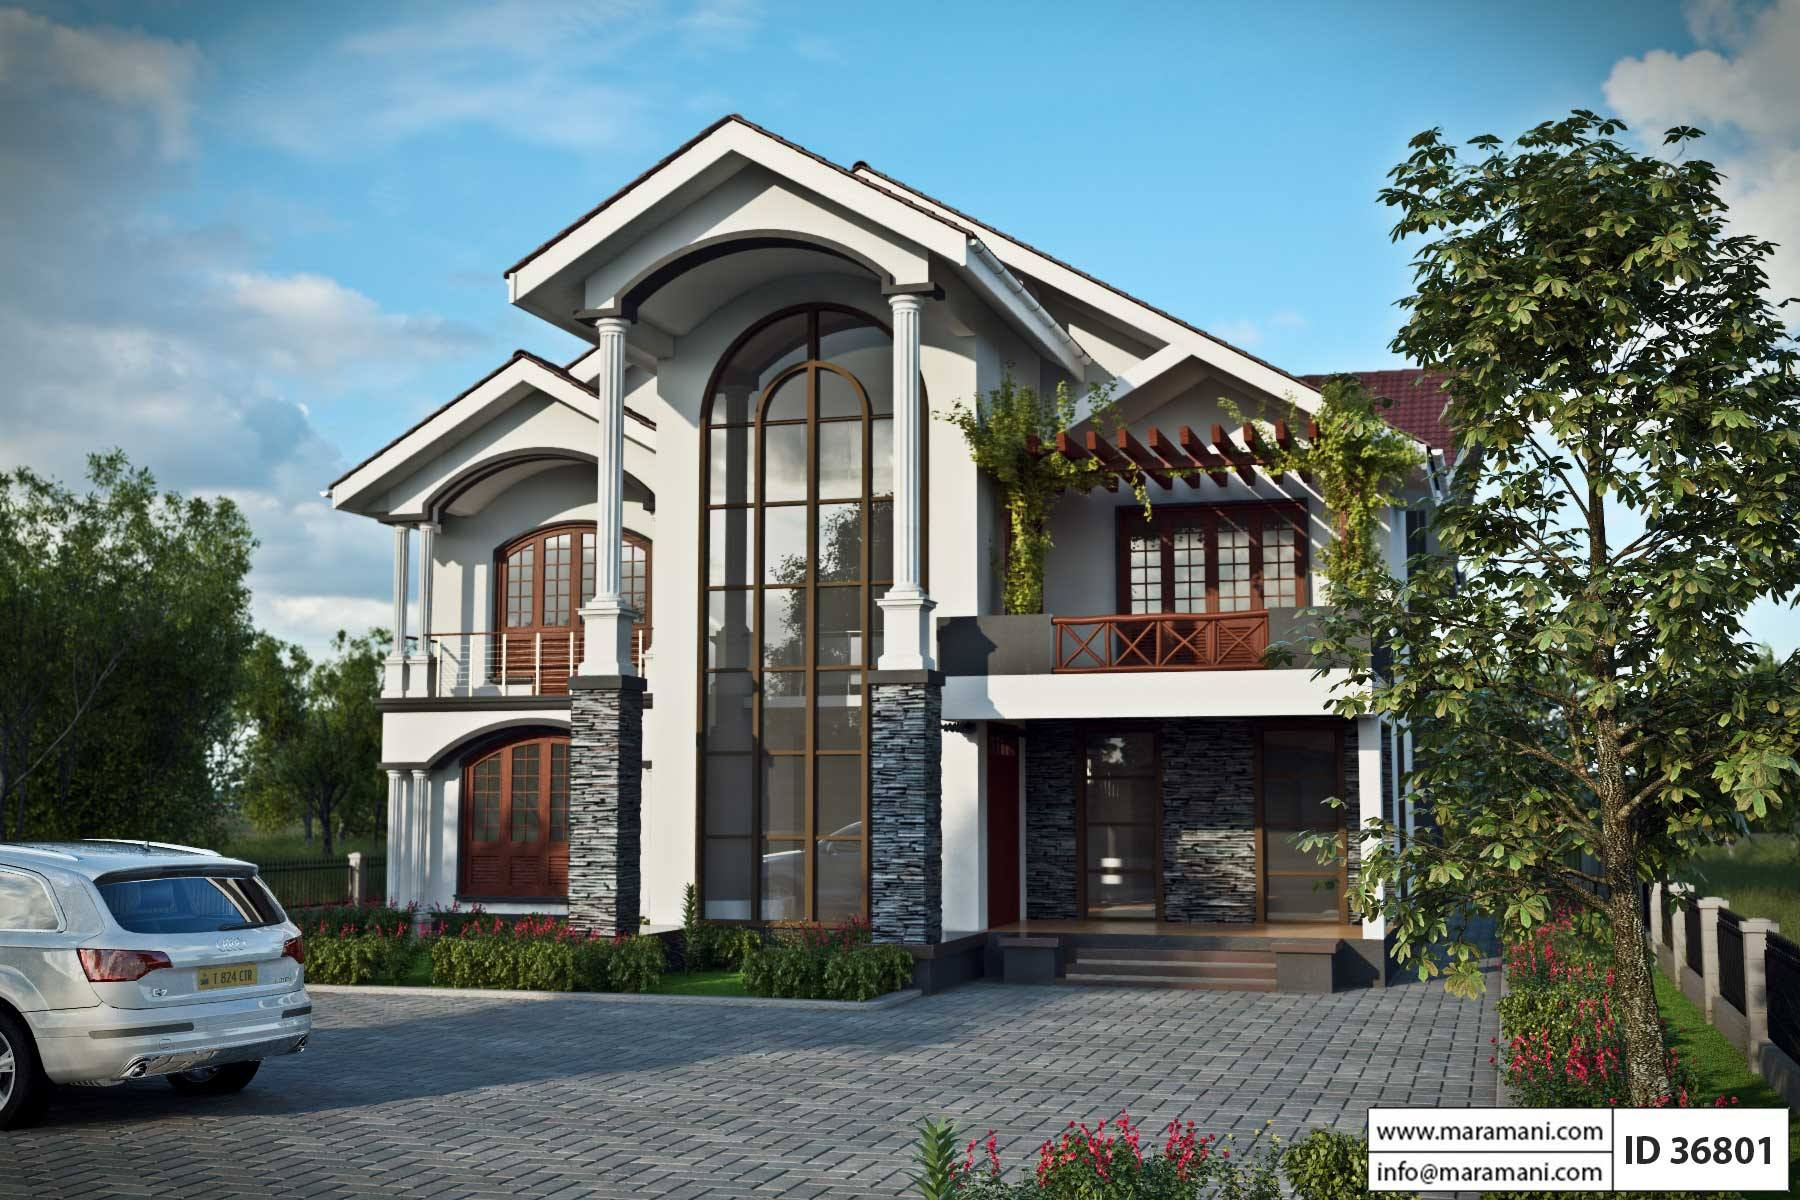 six bedroom house plan id 36801 house designs by maramani rh maramani com six bedroom house for sale mequon wi six bedroom houses for rent louisville ky